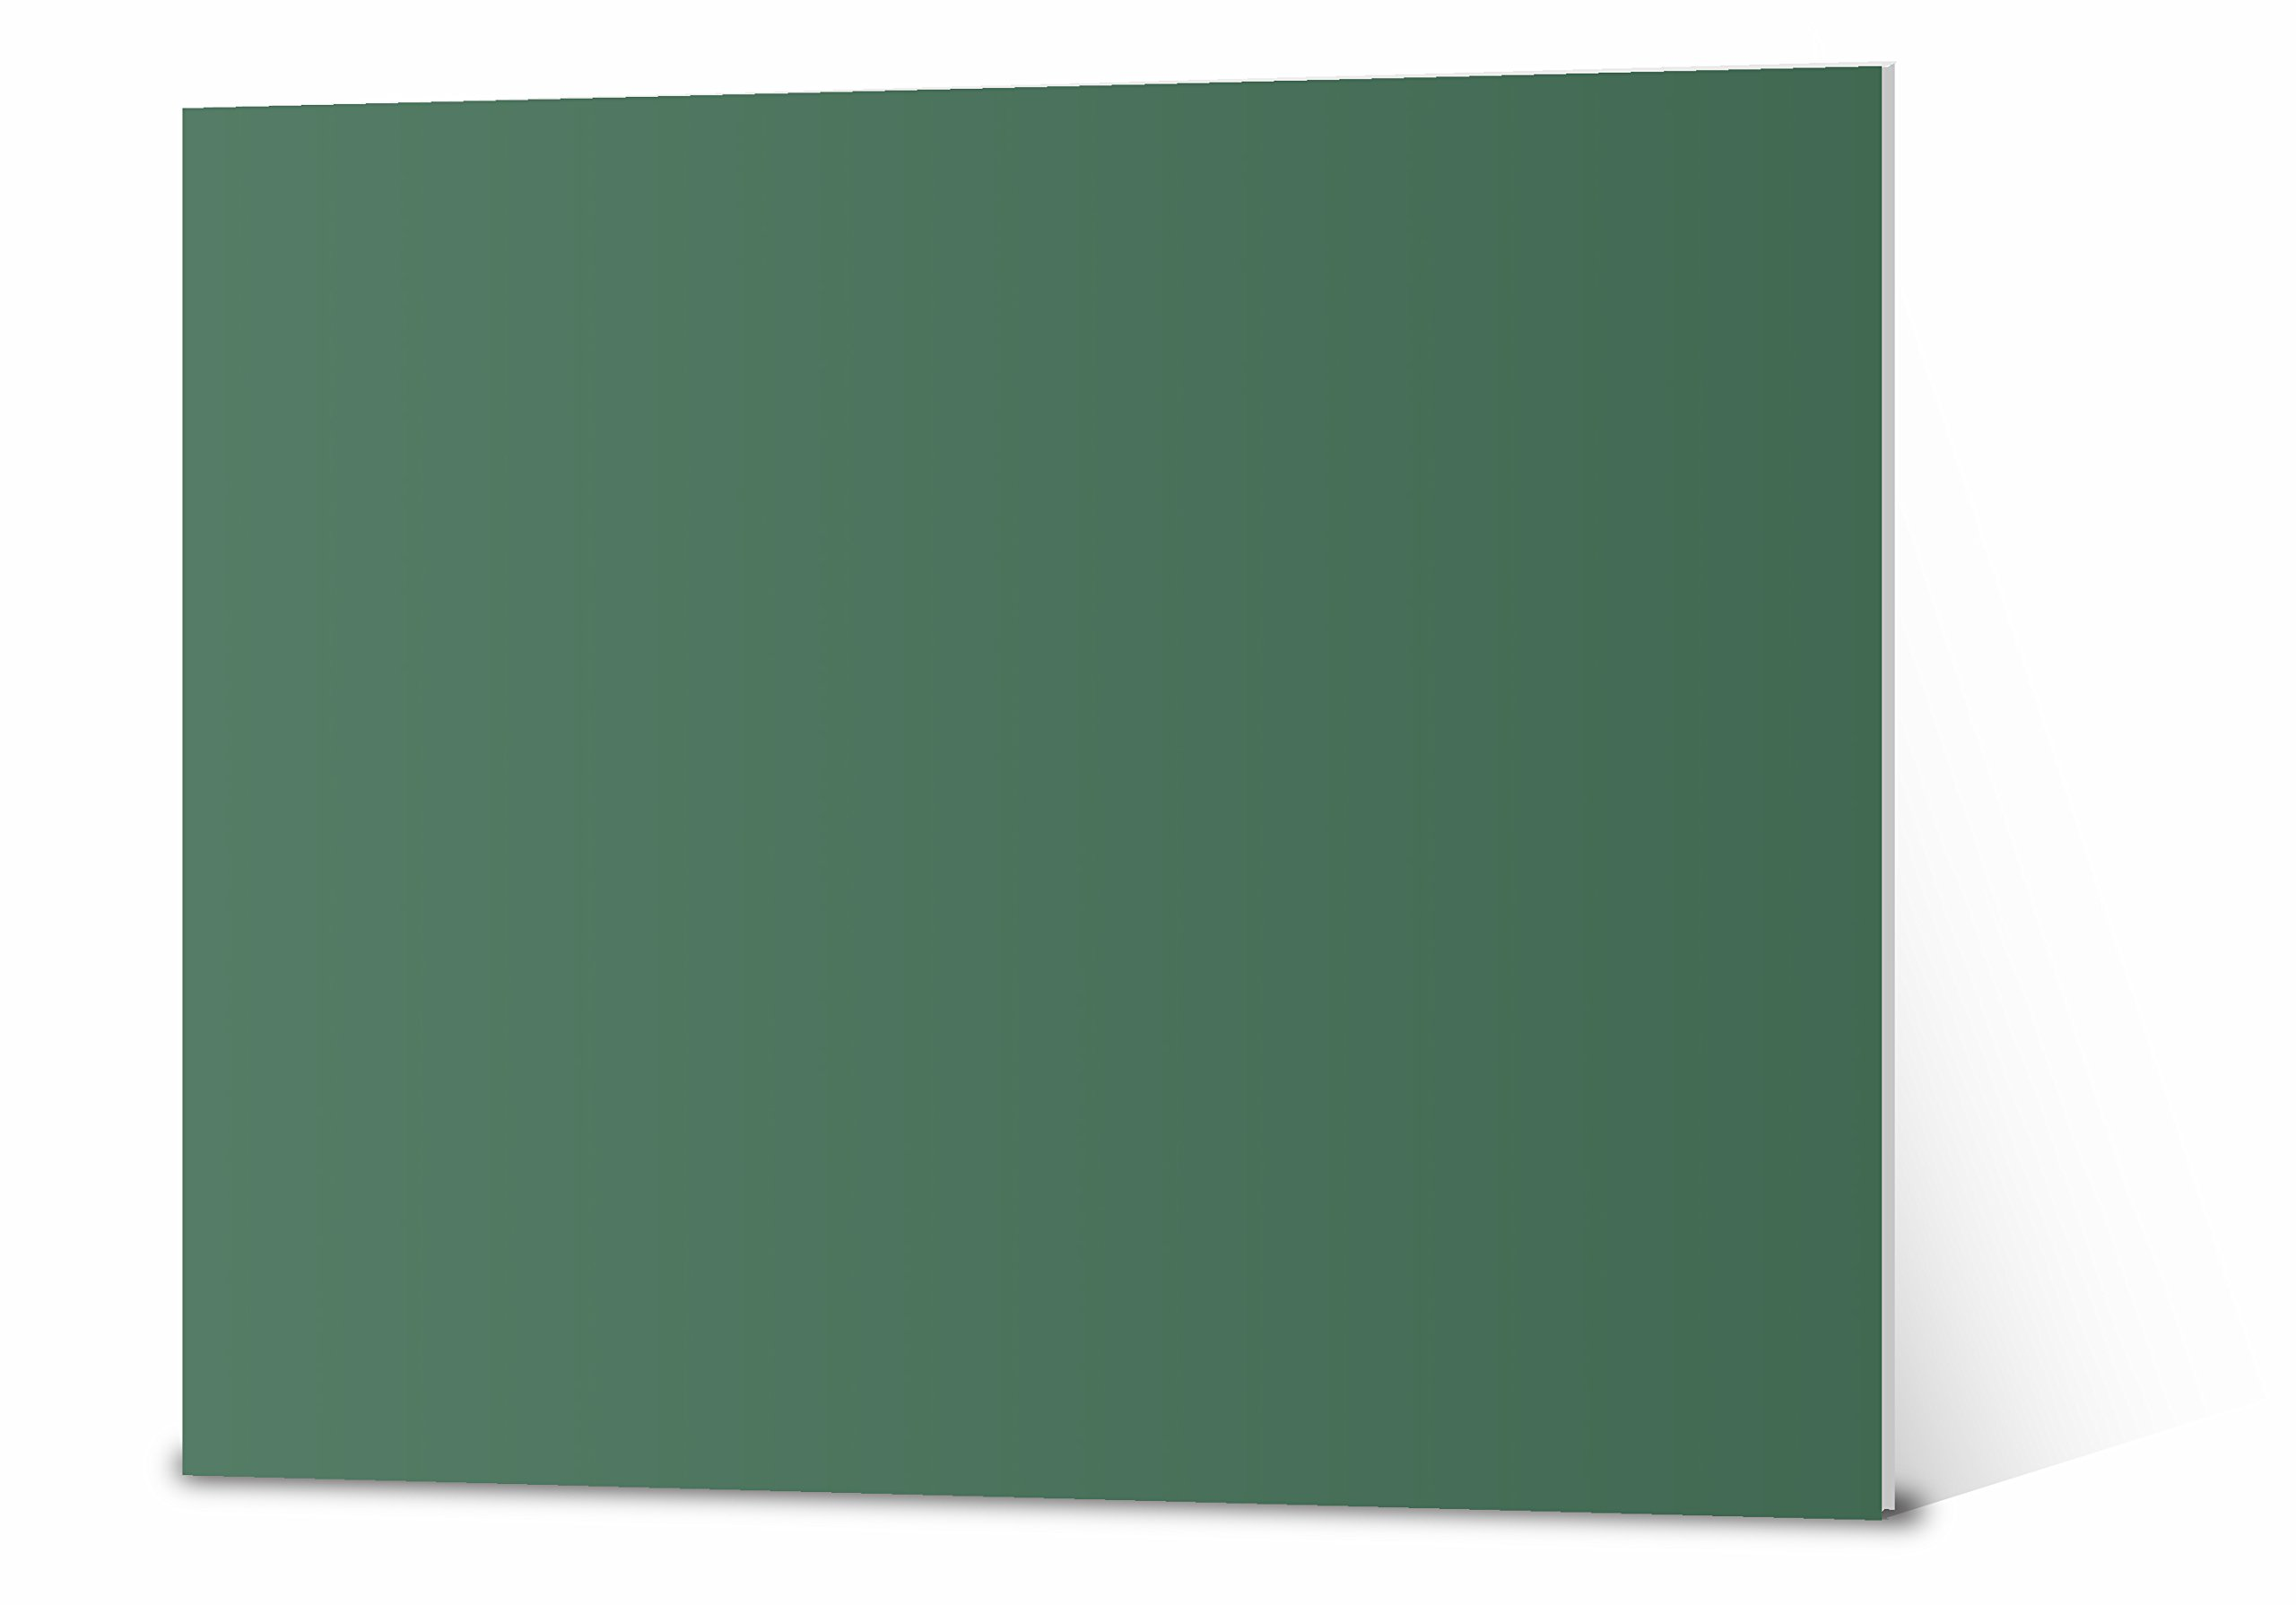 Elmer's Colored Foam Board , 20 x 30, Green, 10-Pack (950054)